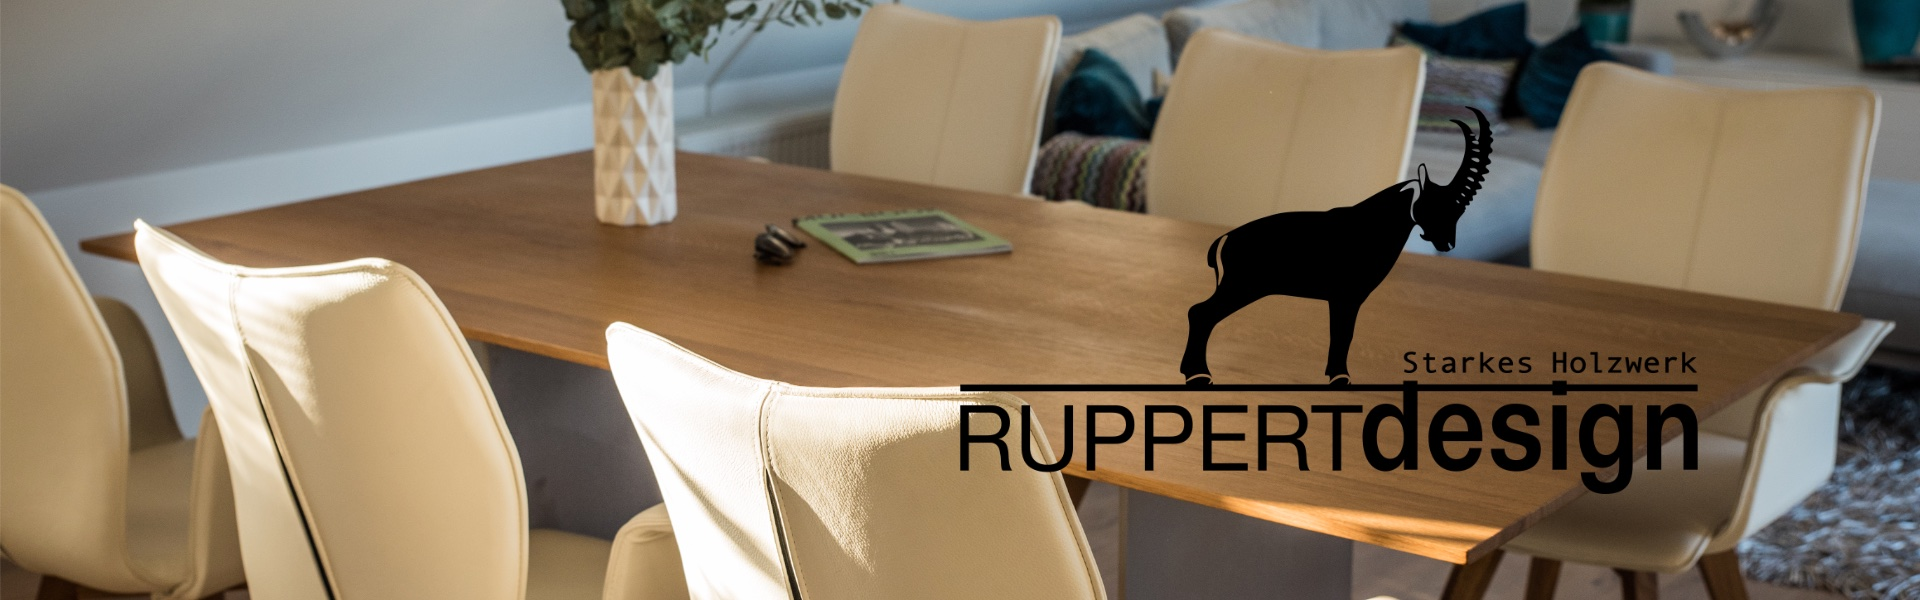 RUPPERTdesign header